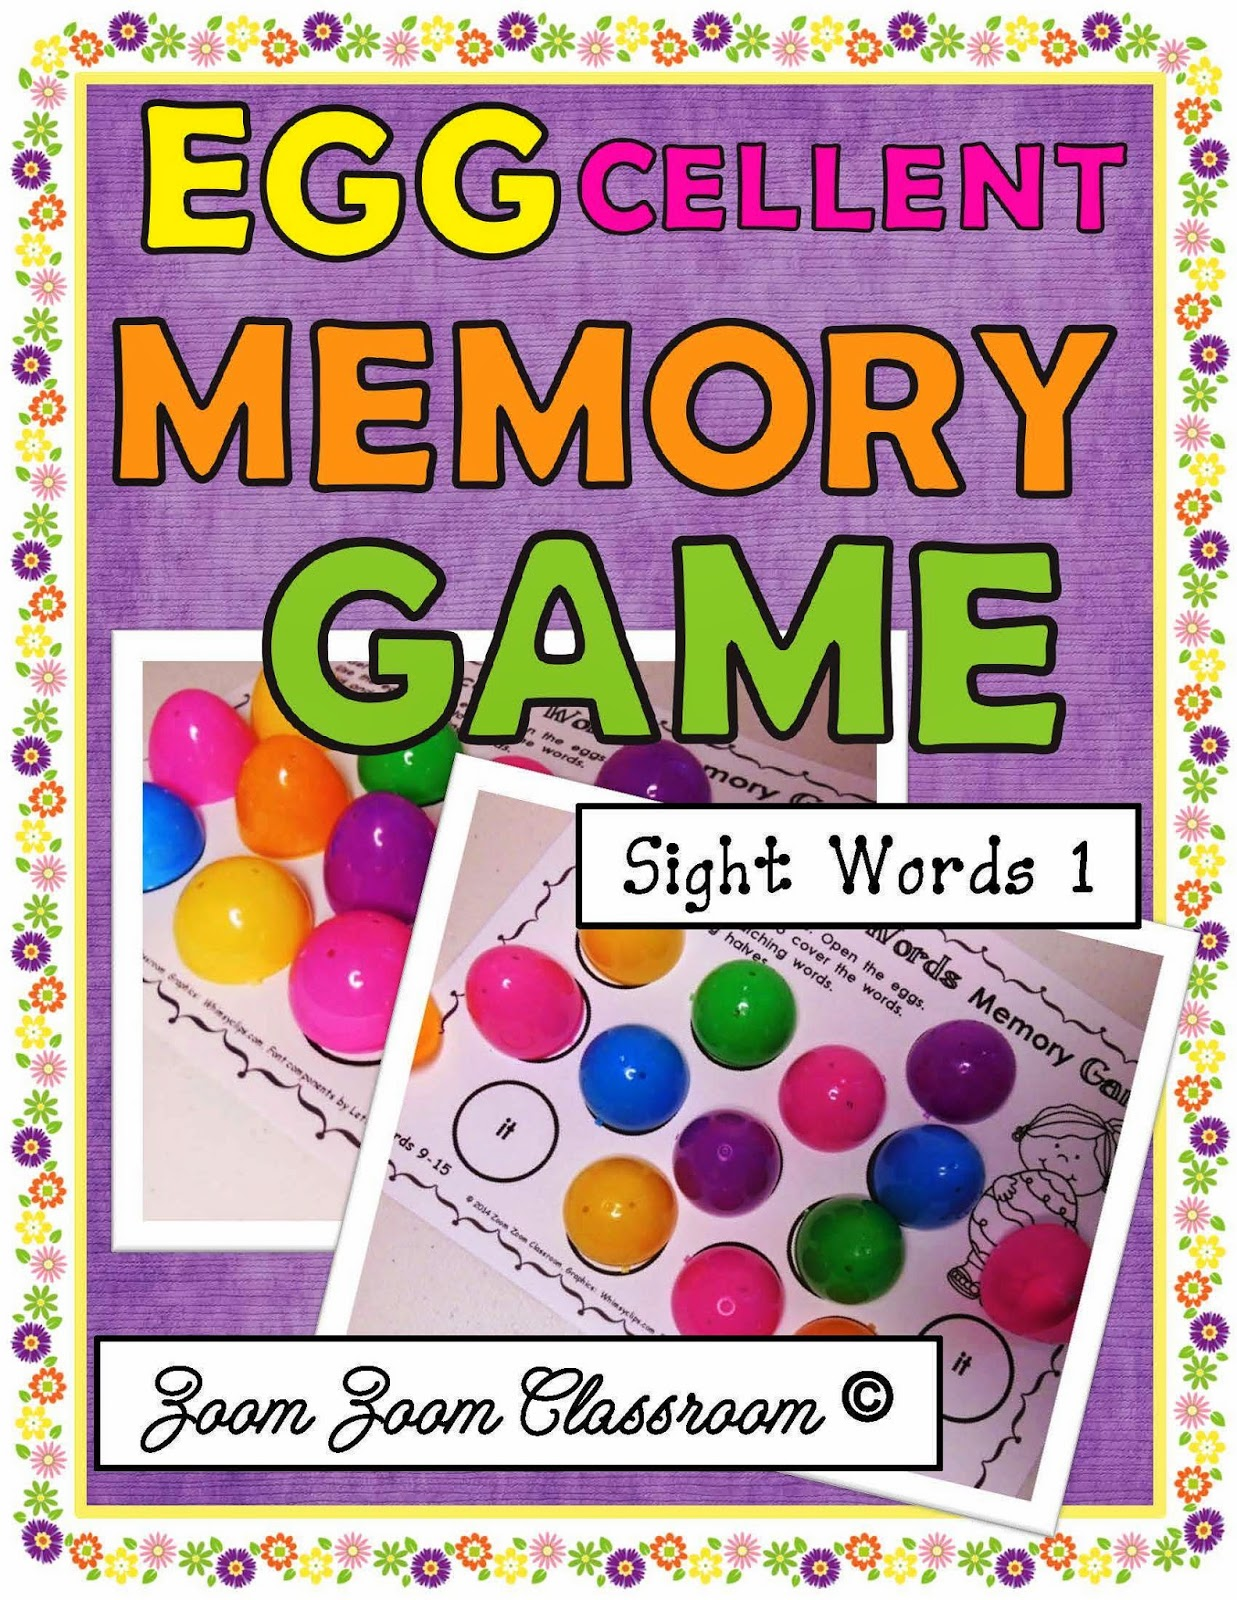 http://www.teacherspayteachers.com/Product/Sight-Words-Egg-Hunt-Memory-Game-Words-1-50-1203761